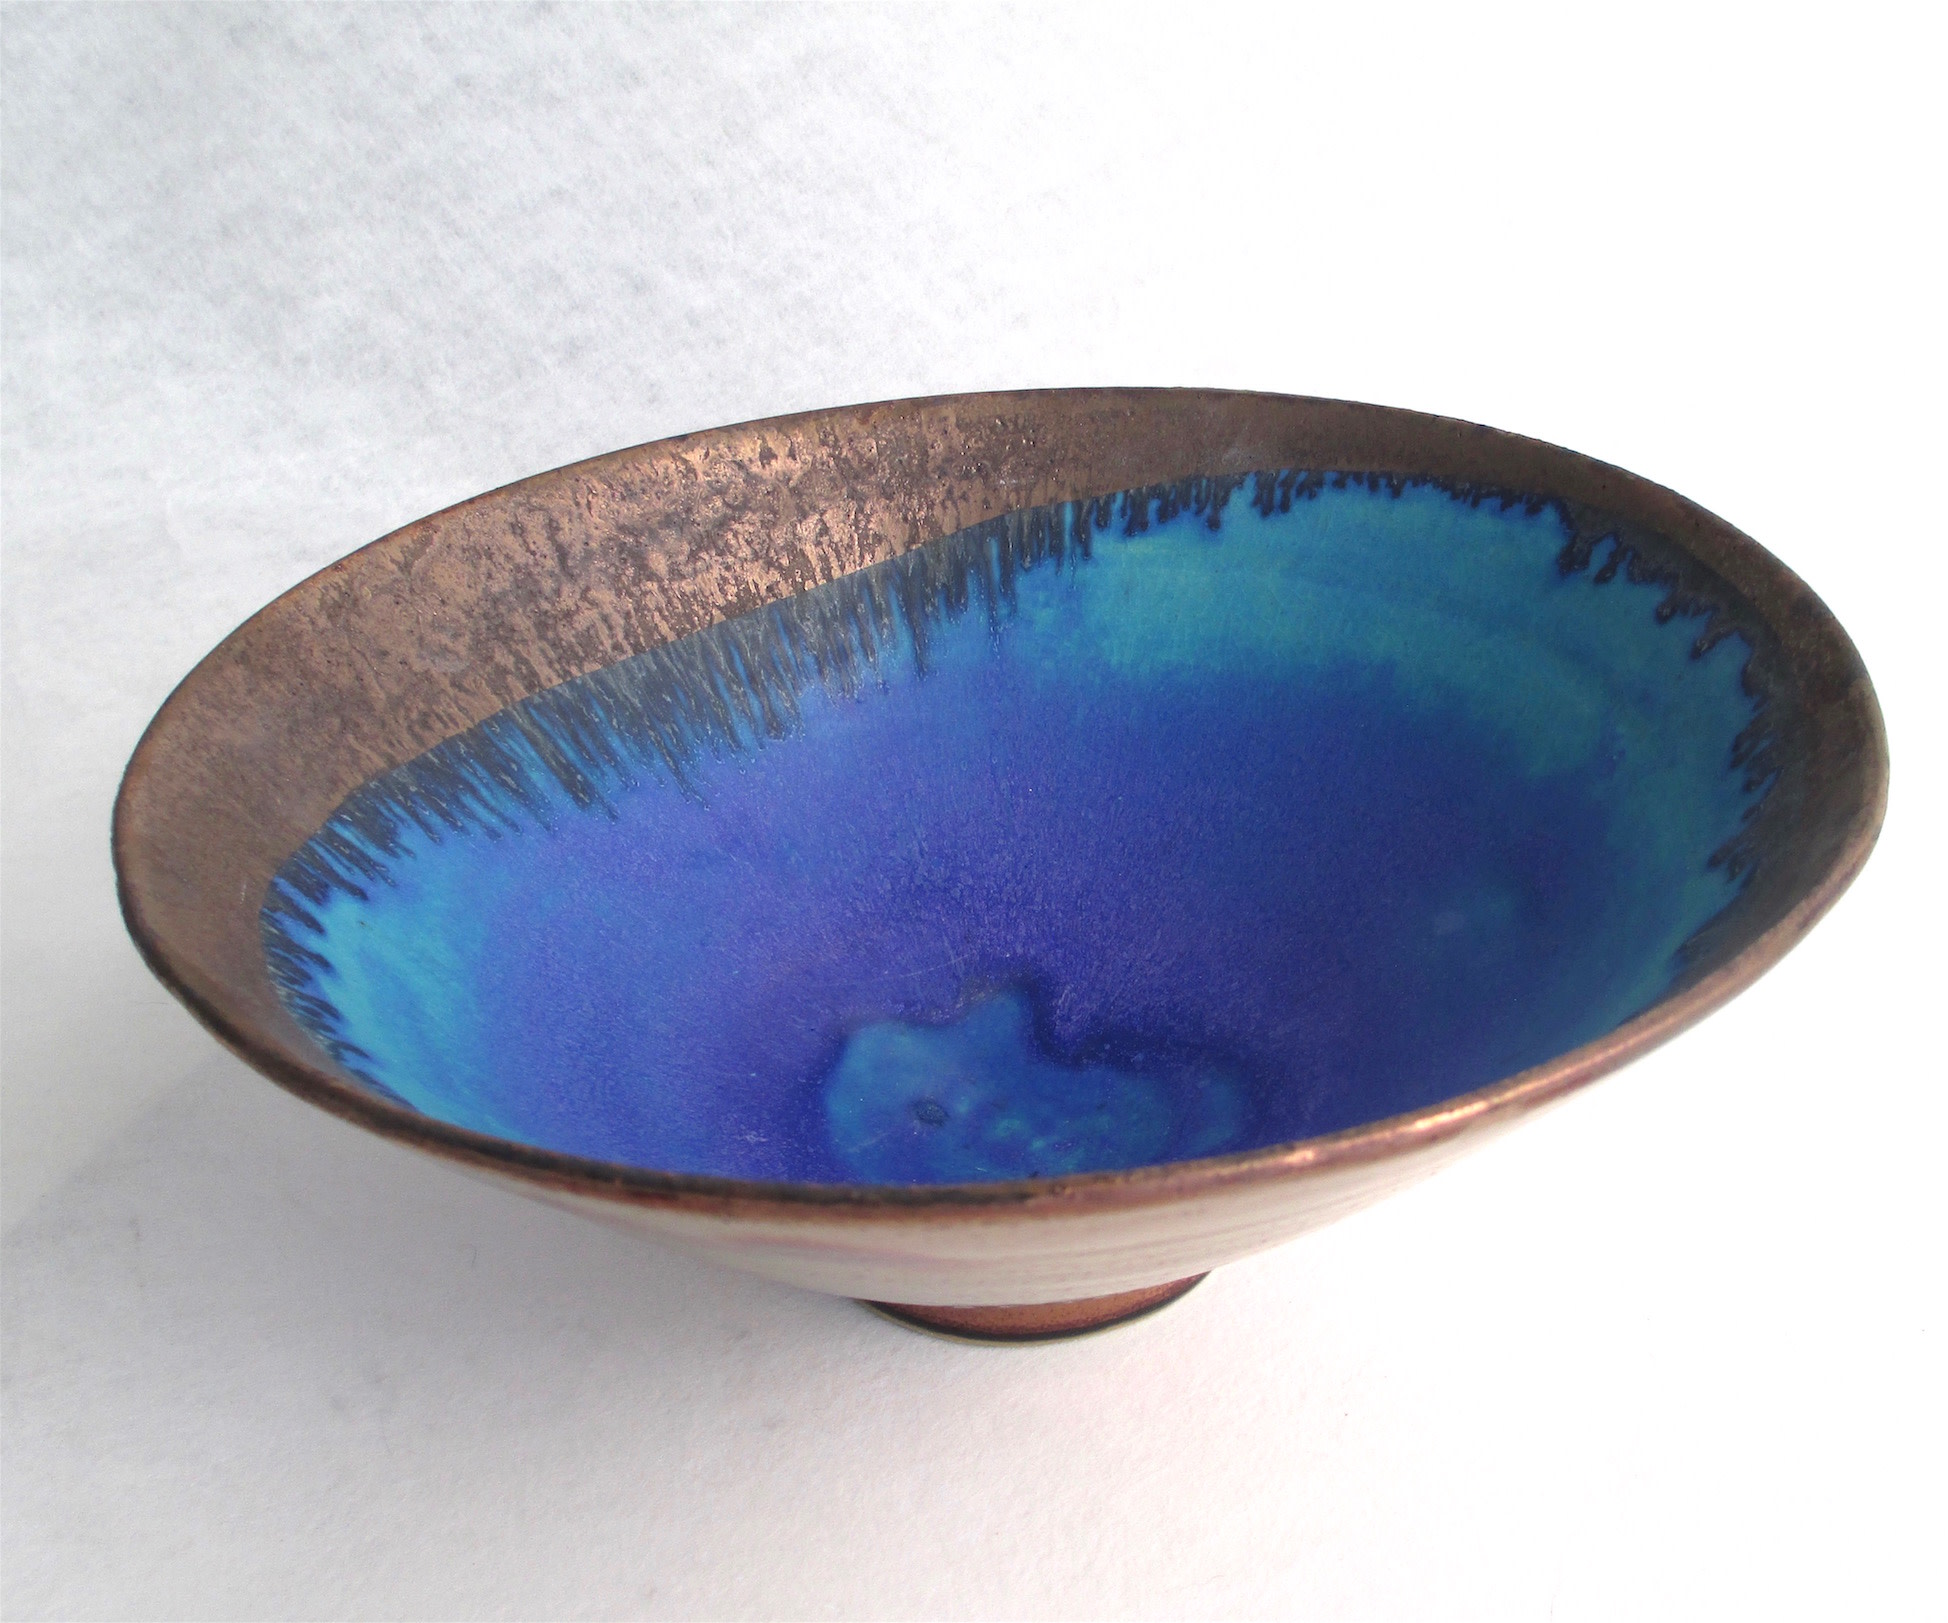 "<span class=""link fancybox-details-link""><a href=""/artists/44-sarah-perry/works/6403-sarah-perry-copper-lustred-blue-pool-bowl-2019/"">View Detail Page</a></span><div class=""artist""><strong>Sarah Perry</strong></div> <div class=""title""><em>Copper Lustred Blue Pool Bowl</em>, 2019</div> <div class=""signed_and_dated"">maker's impressed stamp to base</div> <div class=""medium"">wheel-thrown stoneware</div> <div class=""dimensions"">d29 x h13cm</div><div class=""copyright_line"">Copyright The Artist</div>"